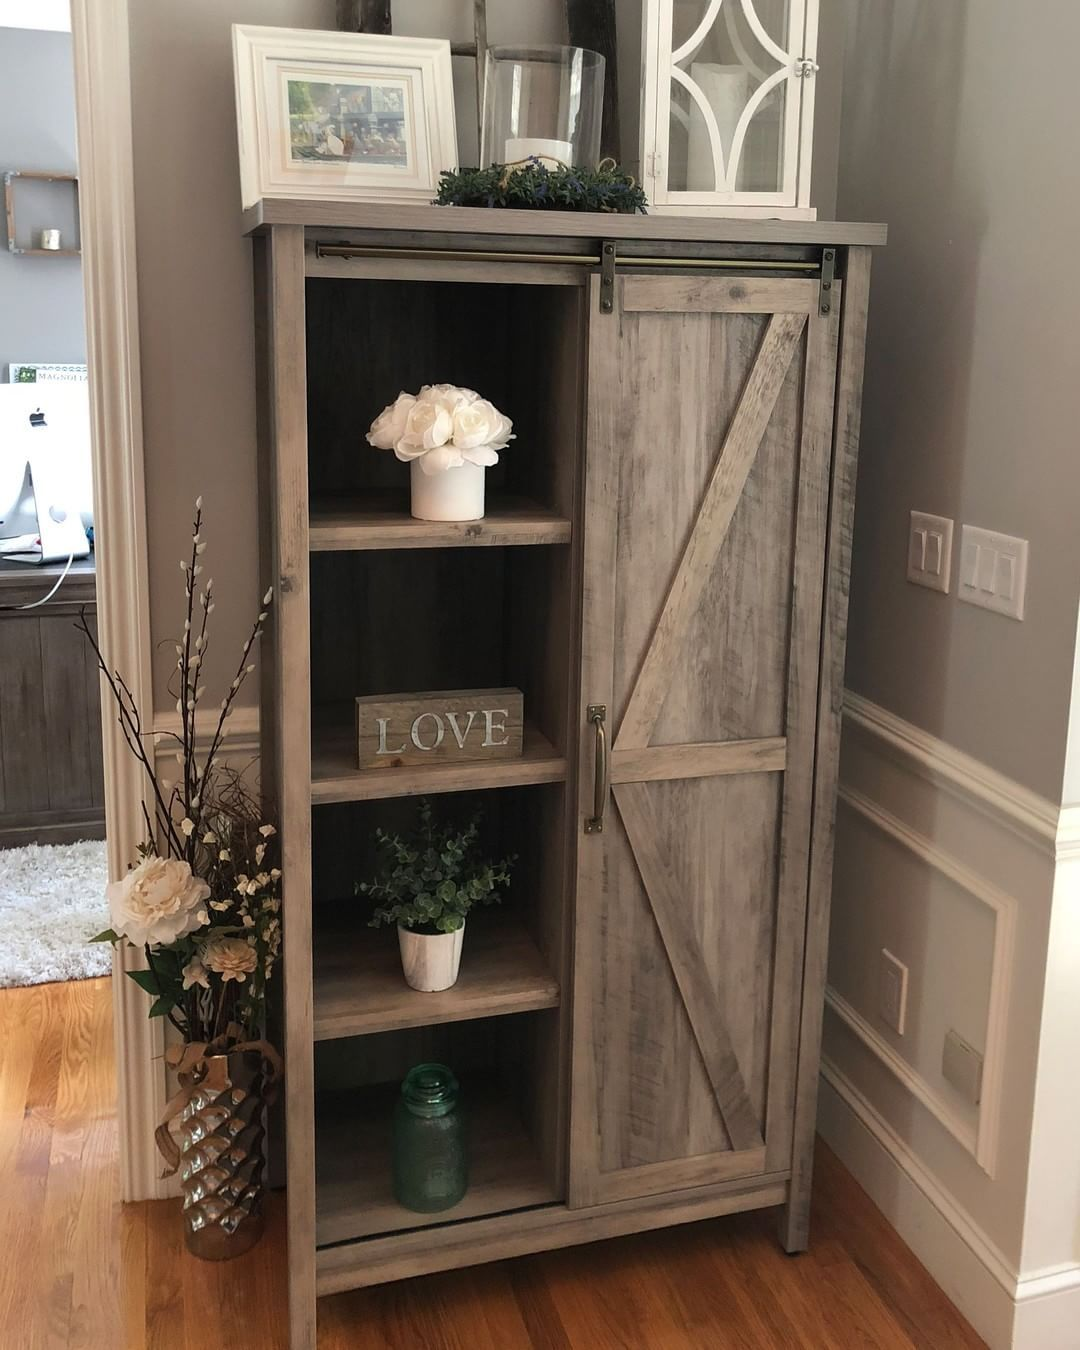 Livhomedecor Shows Off Her Newly Decorated Entryway With The